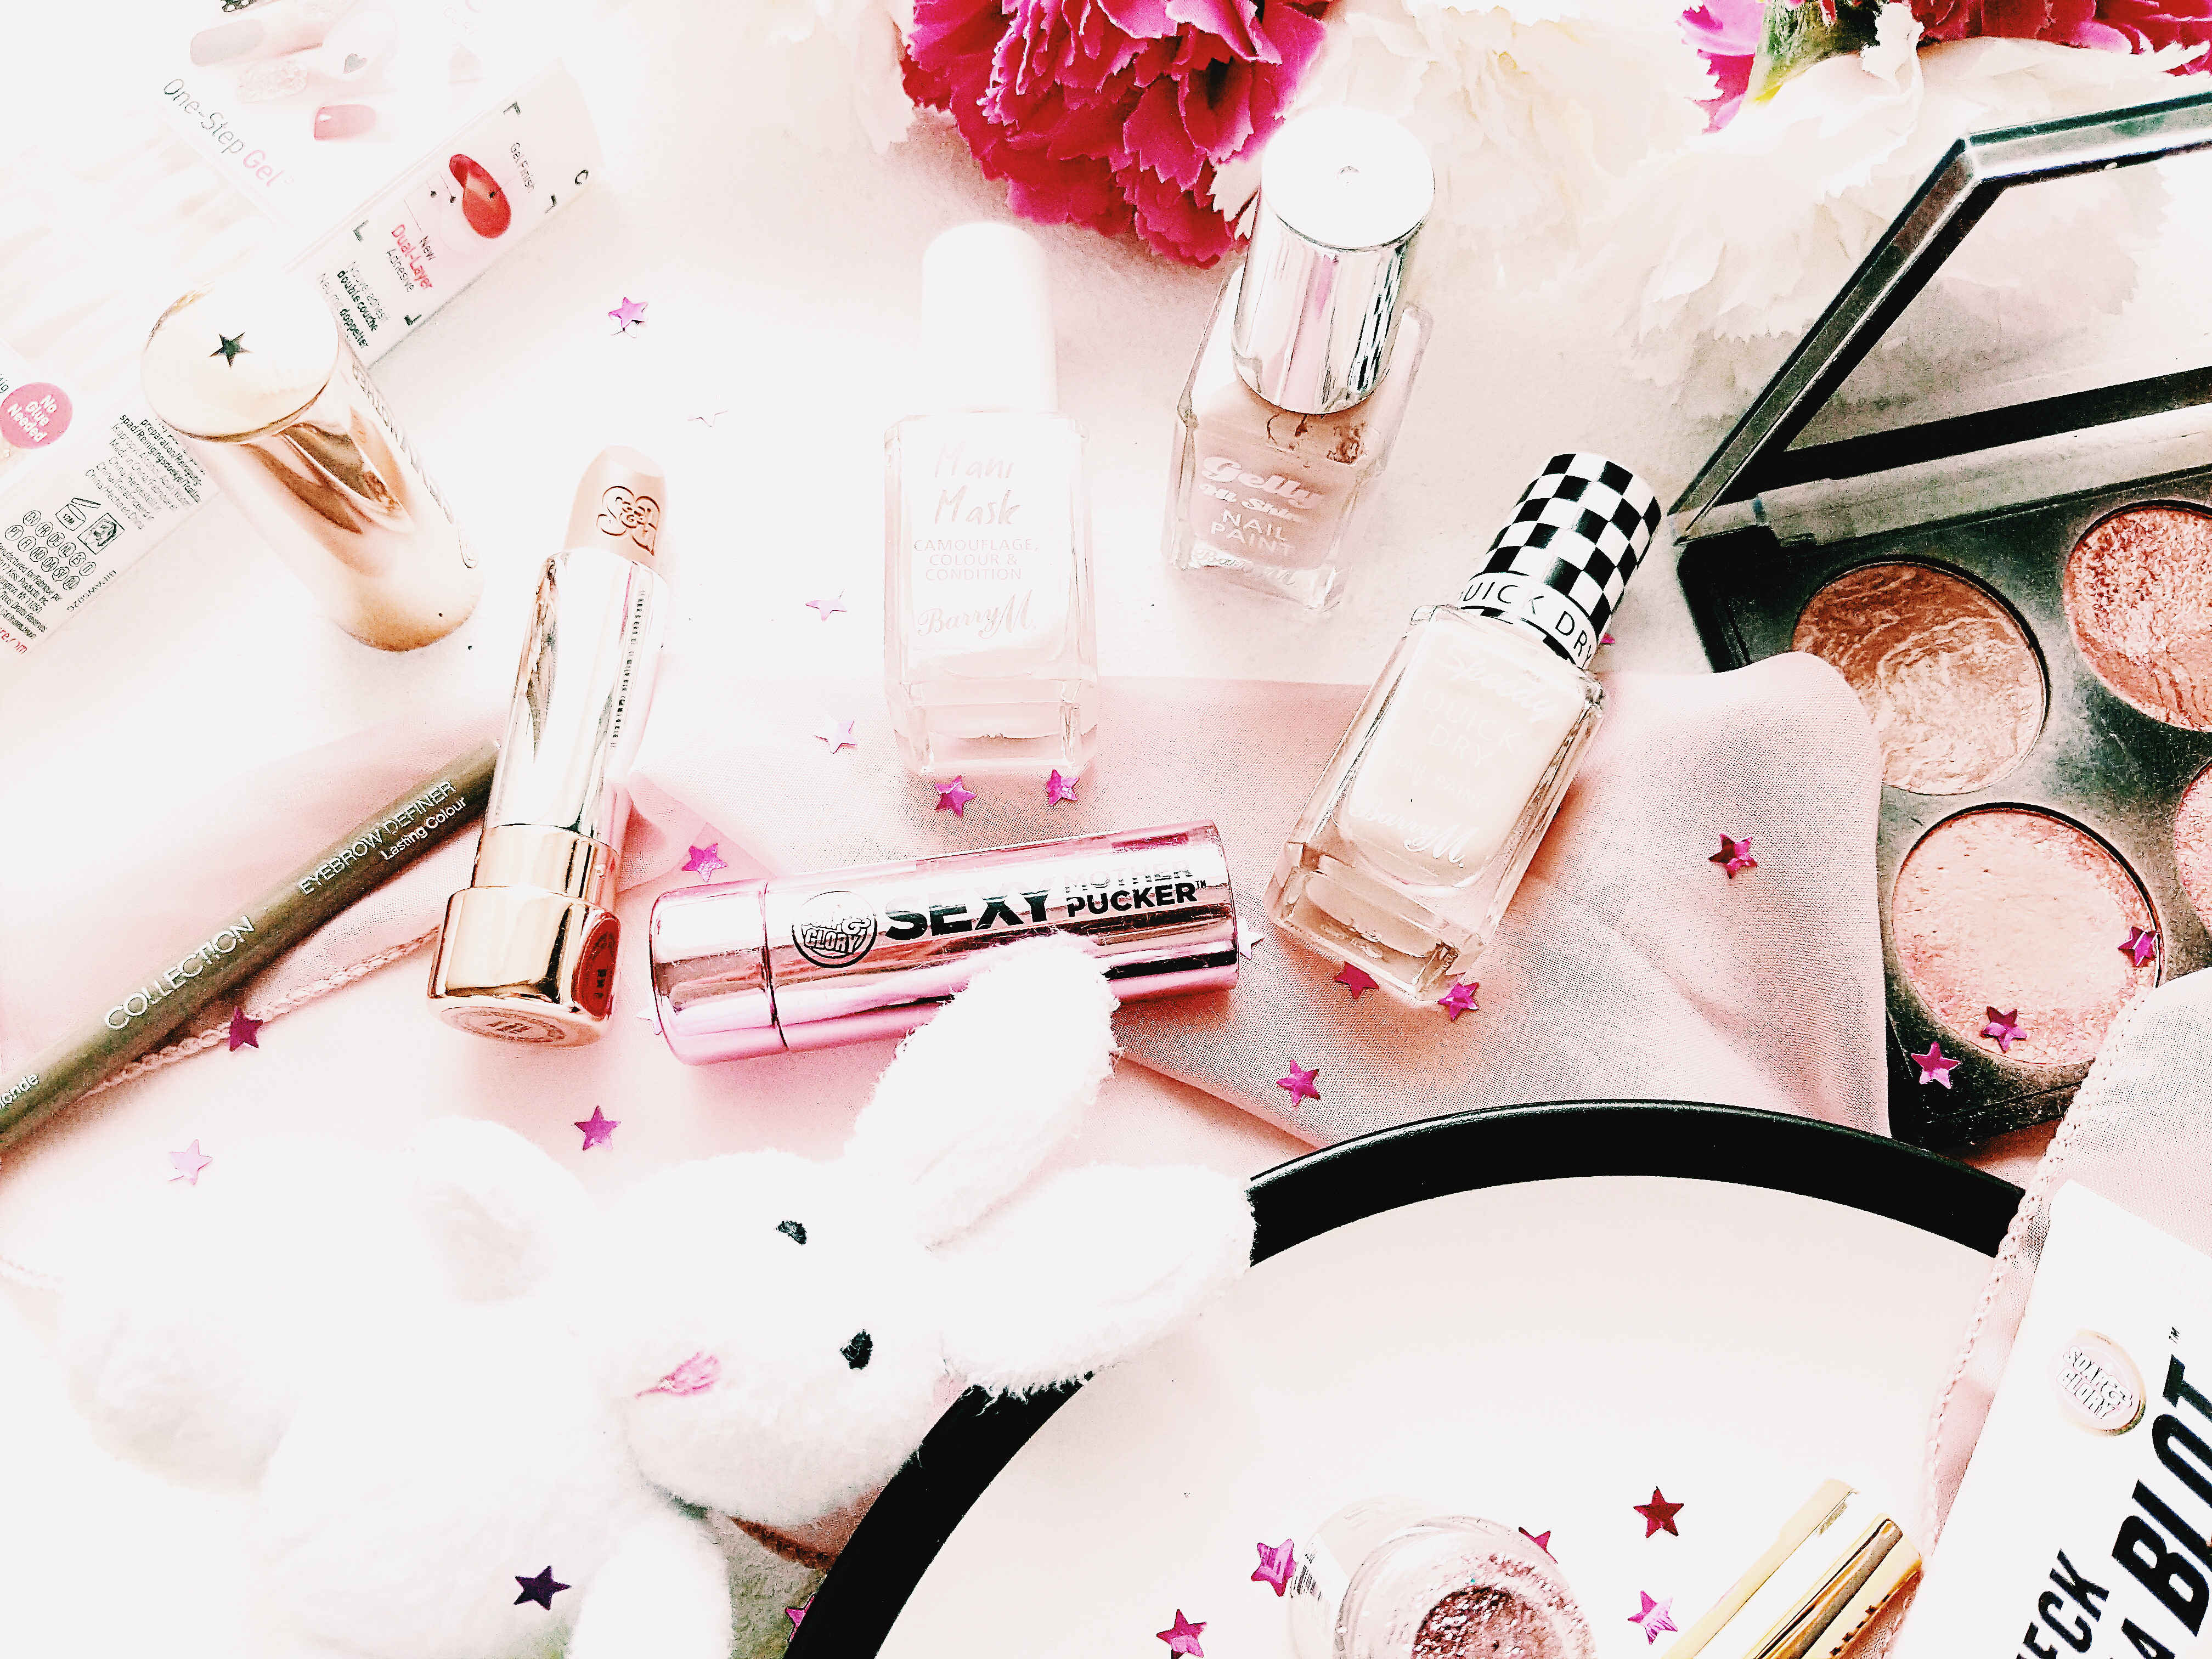 My cruelty-free makeup collection